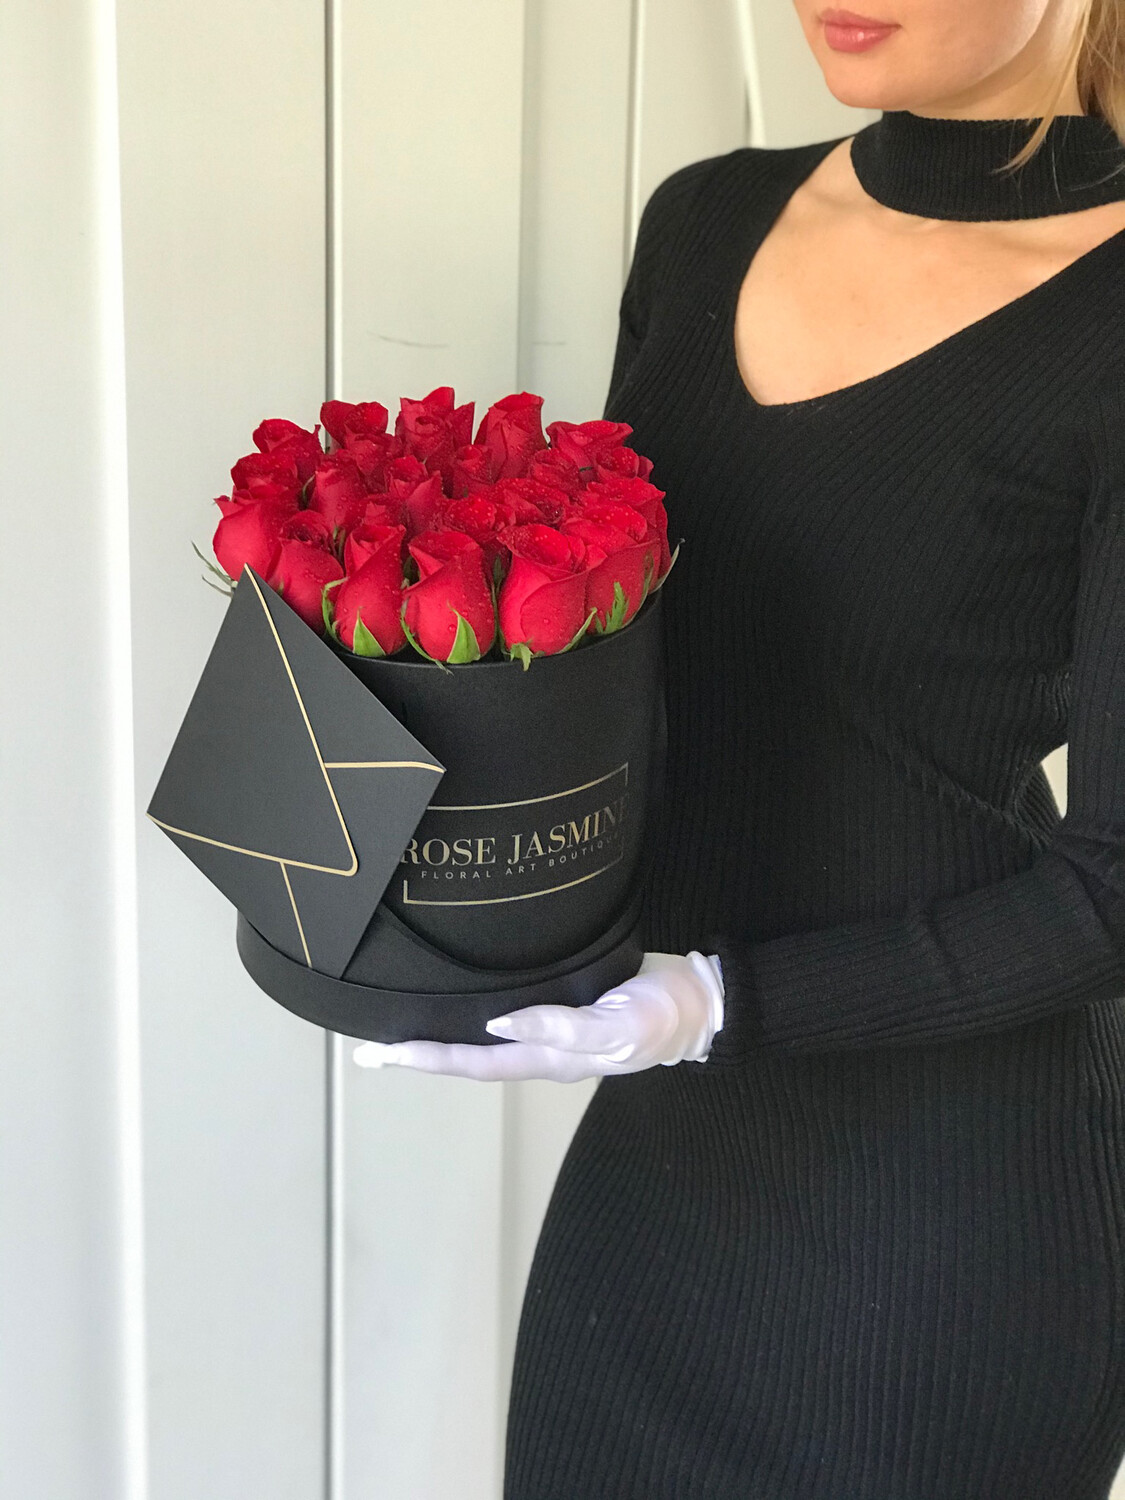 Black Box And Up To 2 Dozen Fresh Red Roses